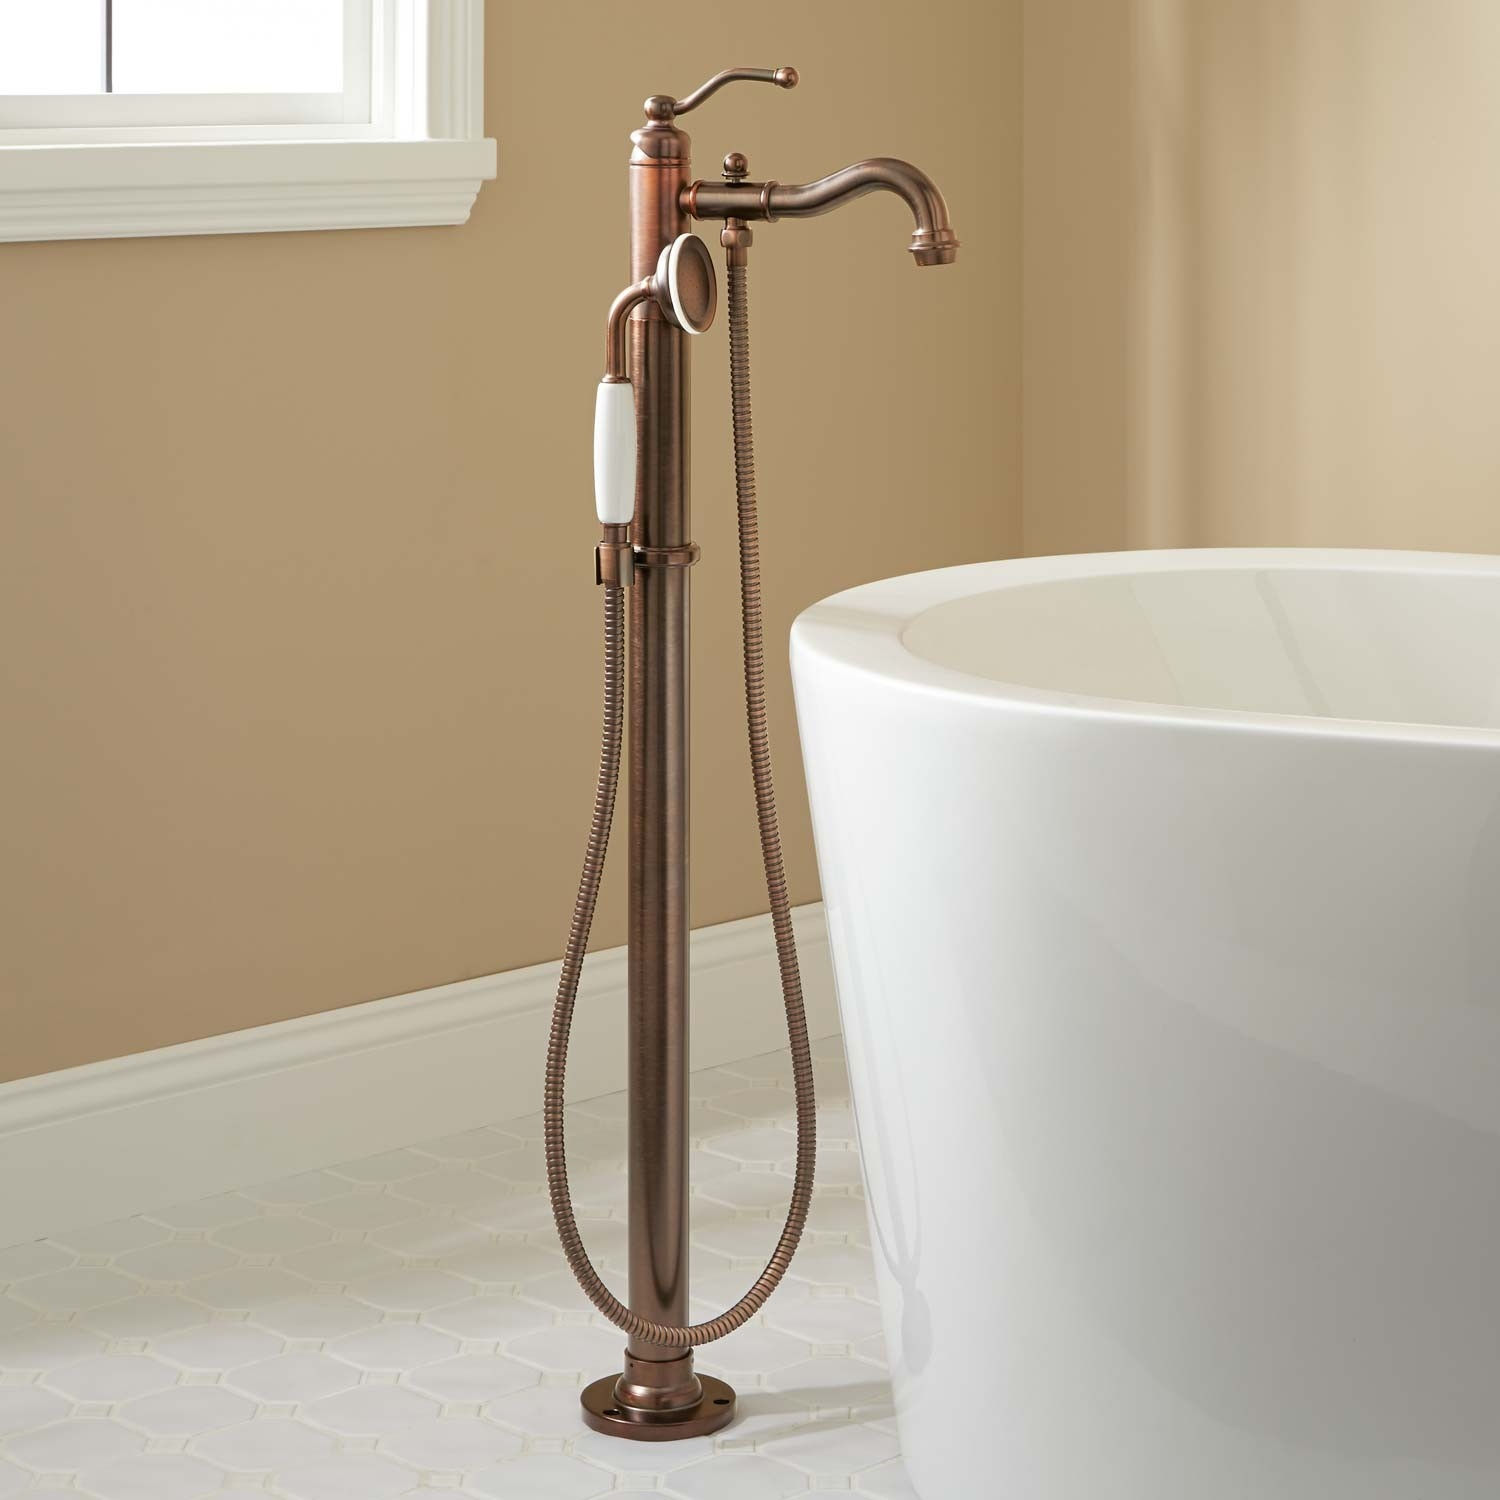 plumbing a bathtub faucet plumbing a bathtub faucet leta freestanding tub faucet with hand shower bathroom 1500 x 1500